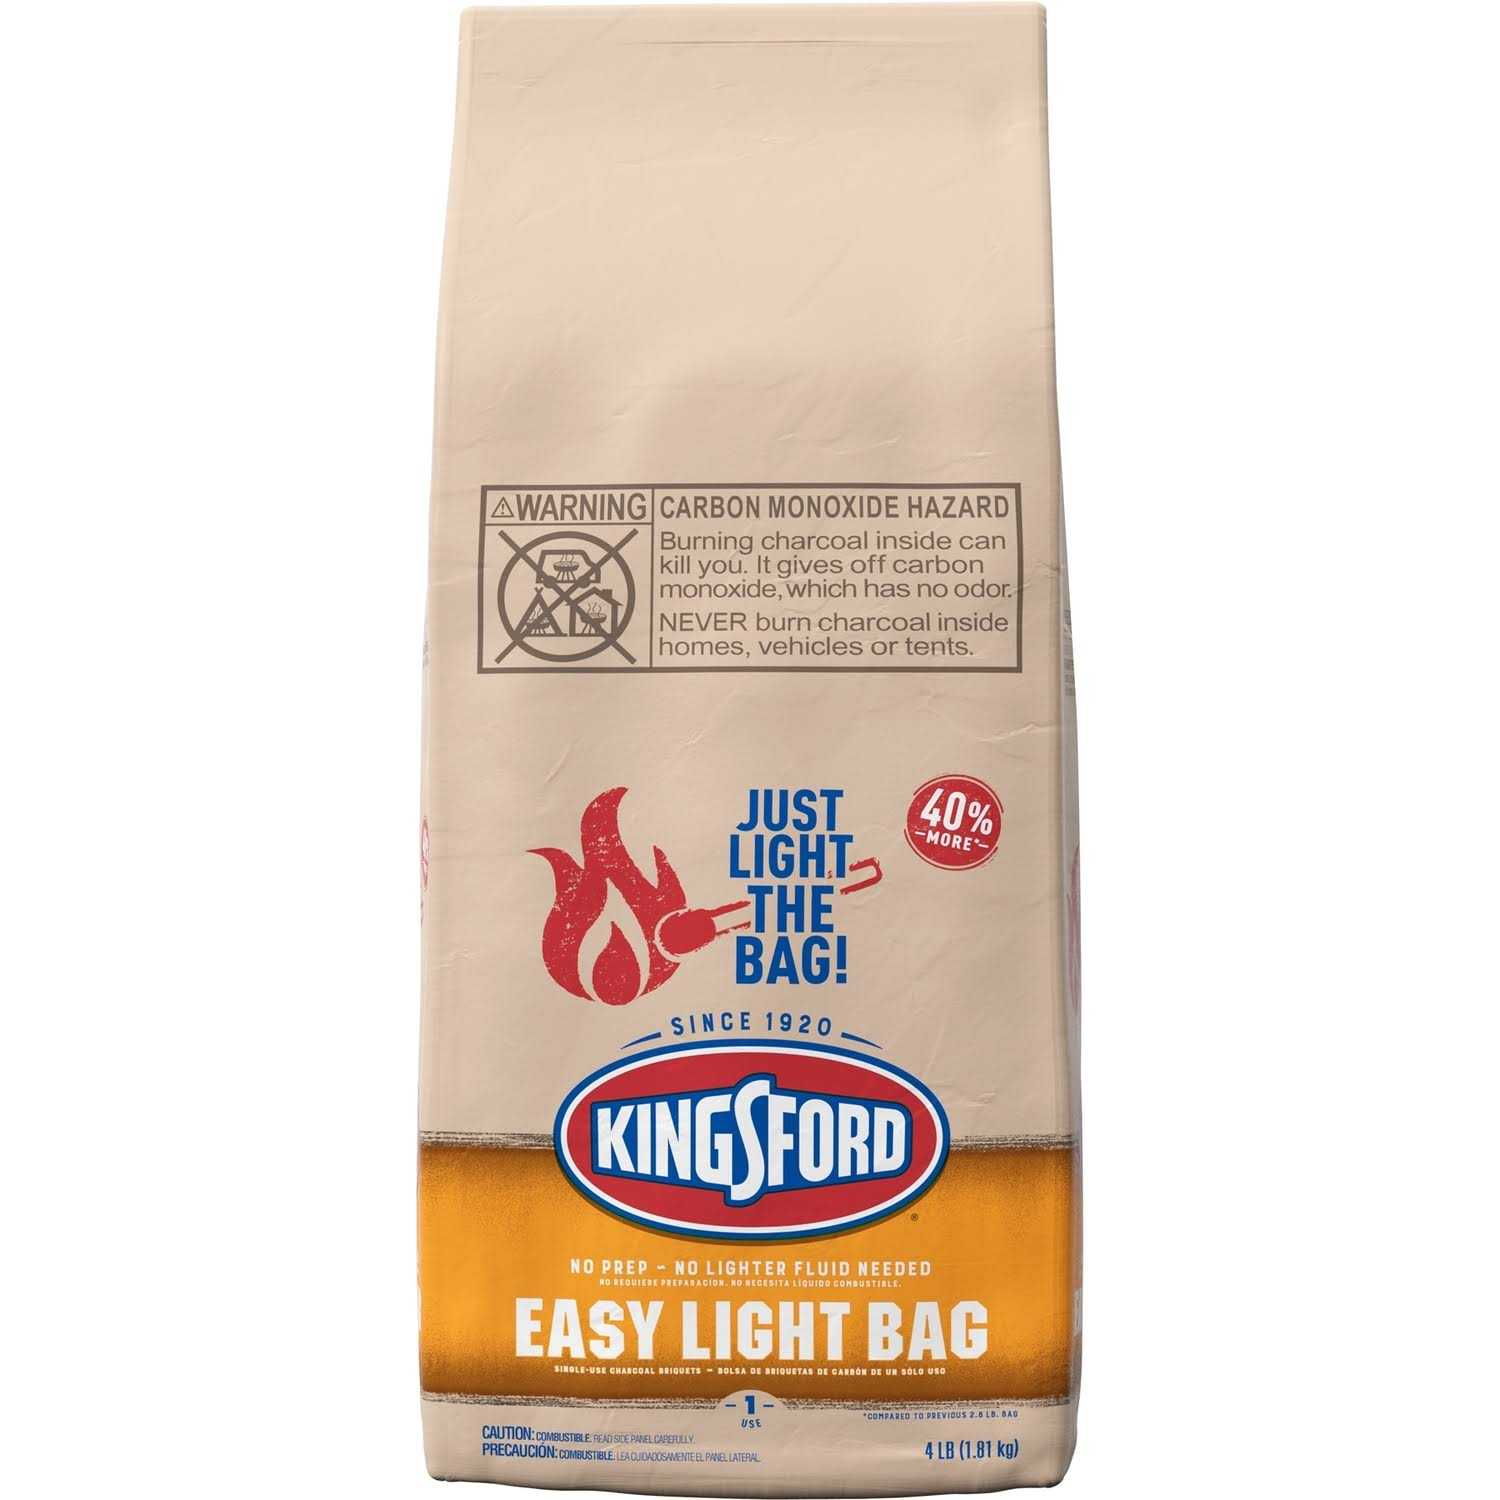 Kingsford Easy Light Bag - 4 lb